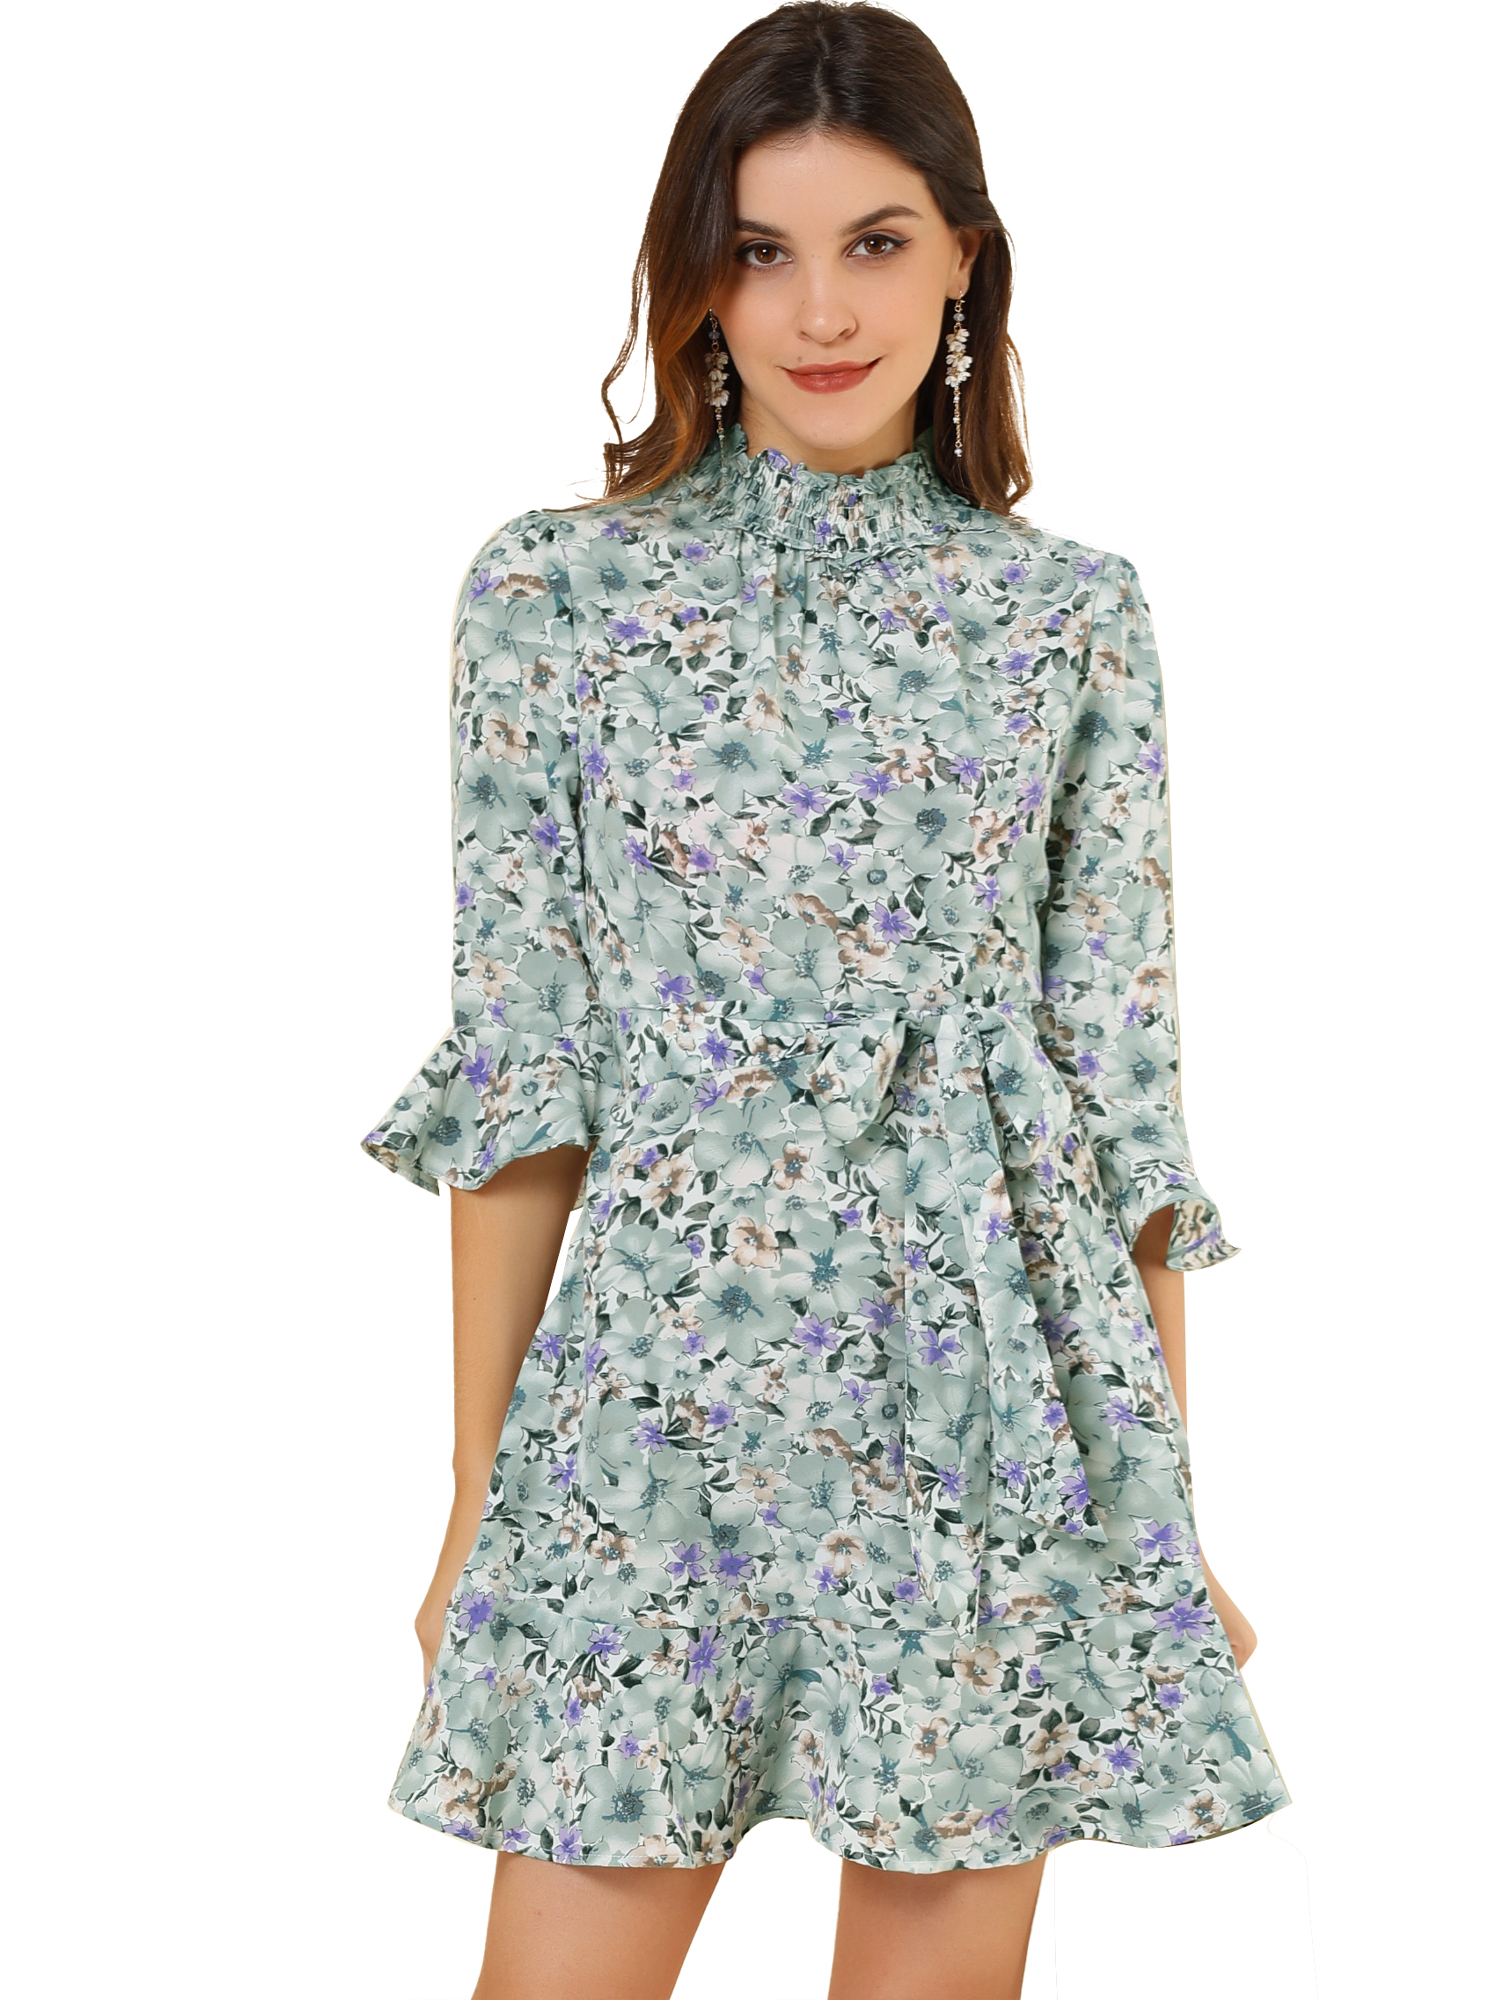 Women's Floral 3/4 Bell Sleeve Smocked Belted Flare Ruffle Dress White Mint XS